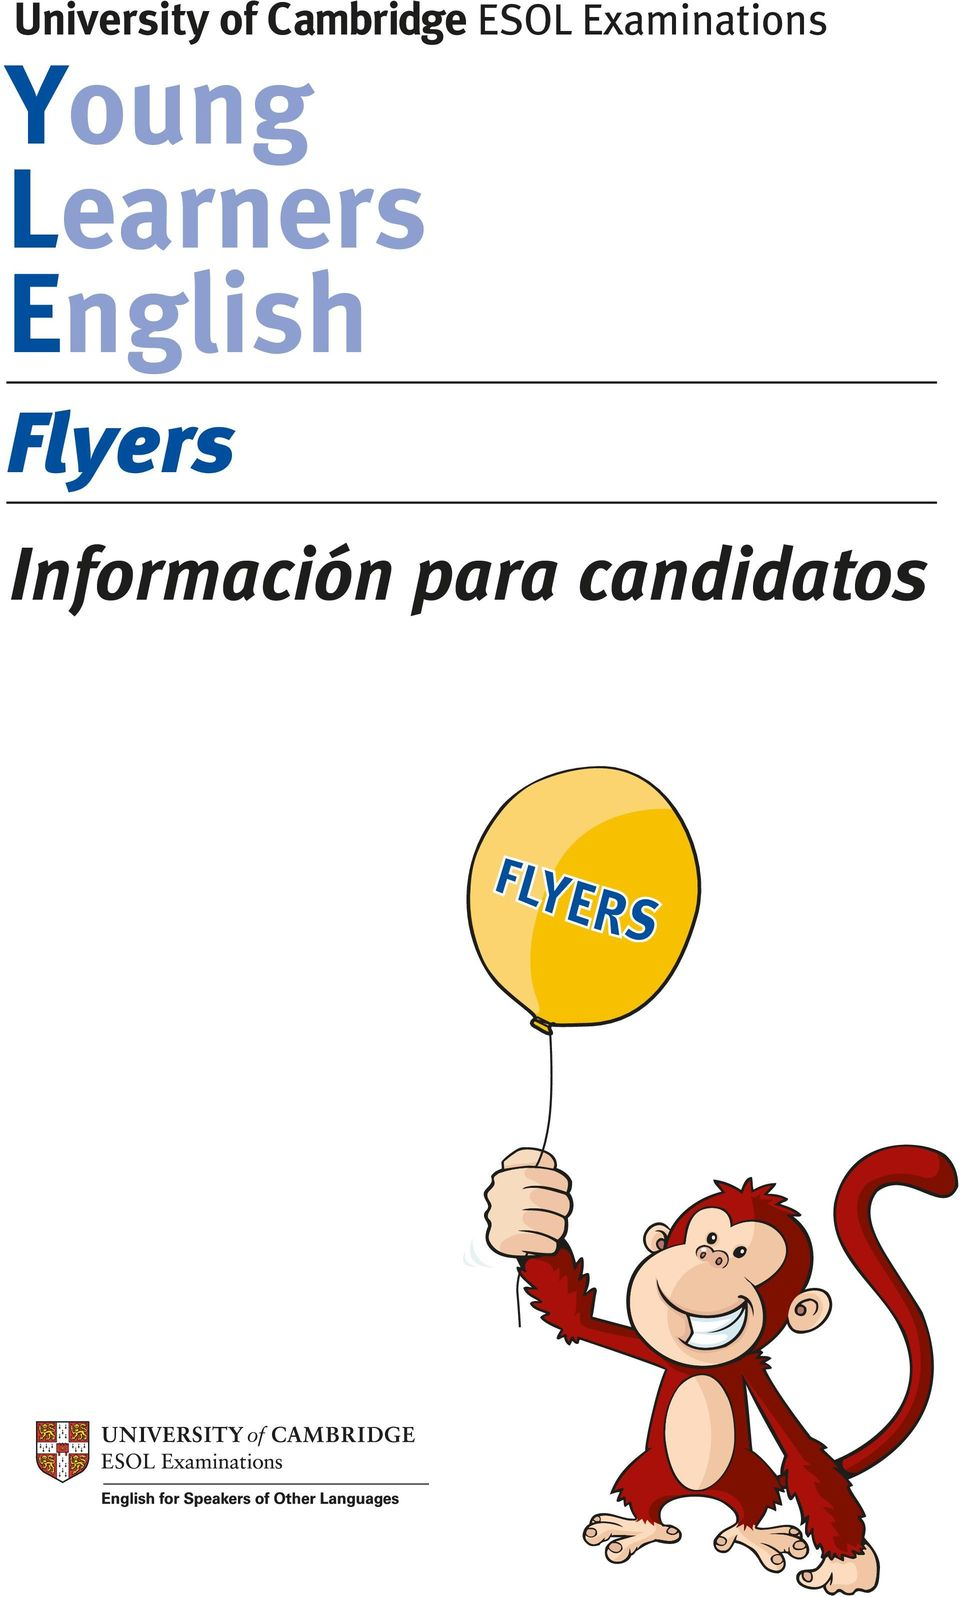 Learners English Flyers